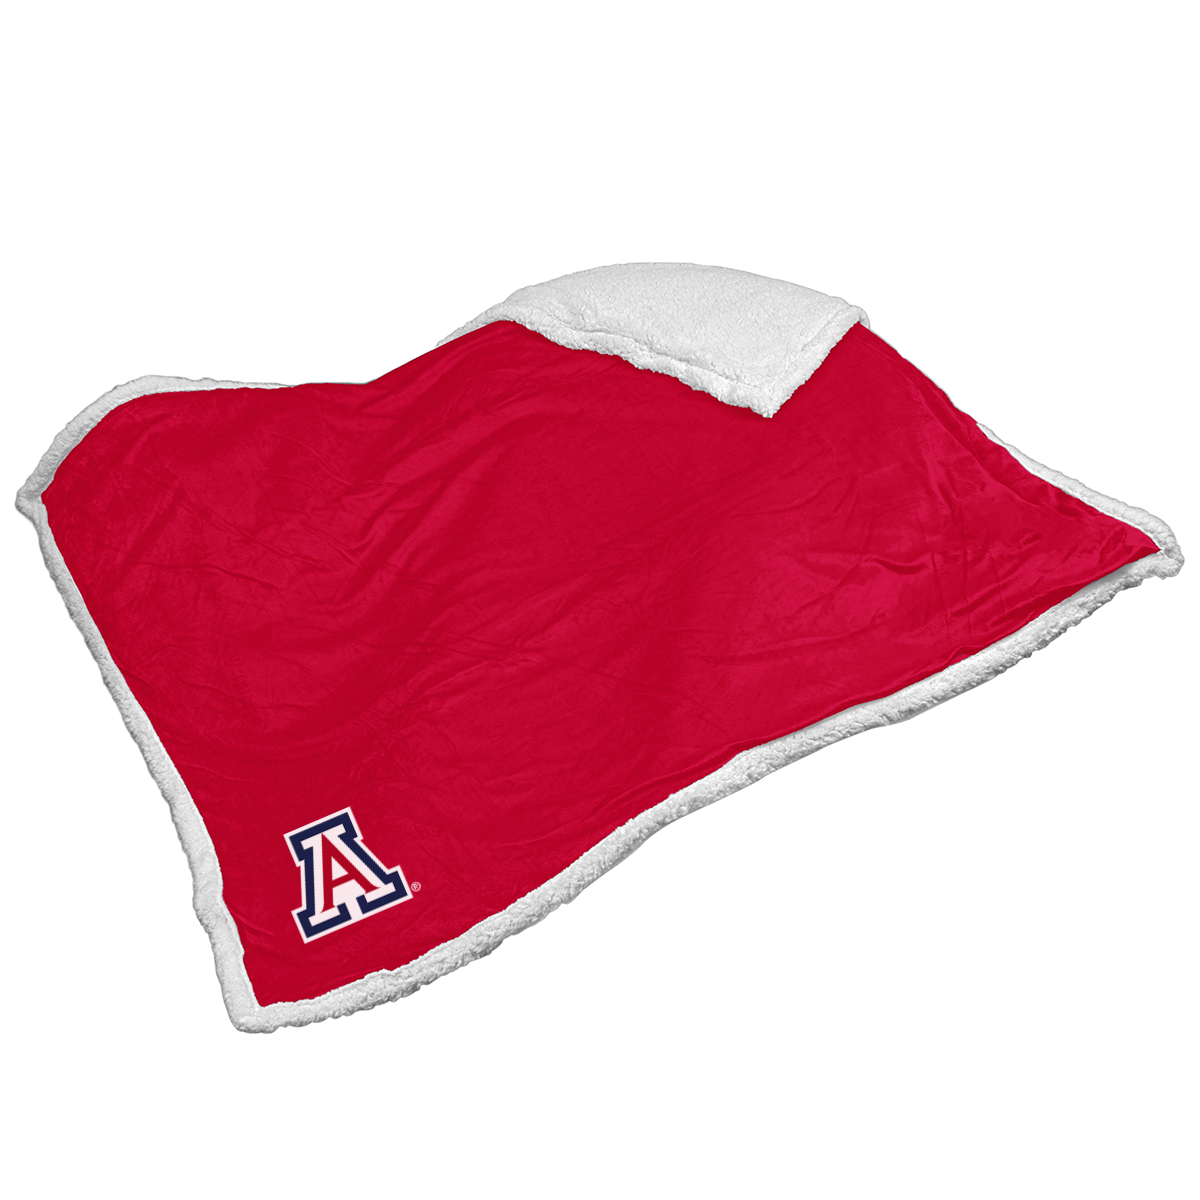 Image For Blanket: Arizona Sherpa Throw Blanket by LOGO Brands